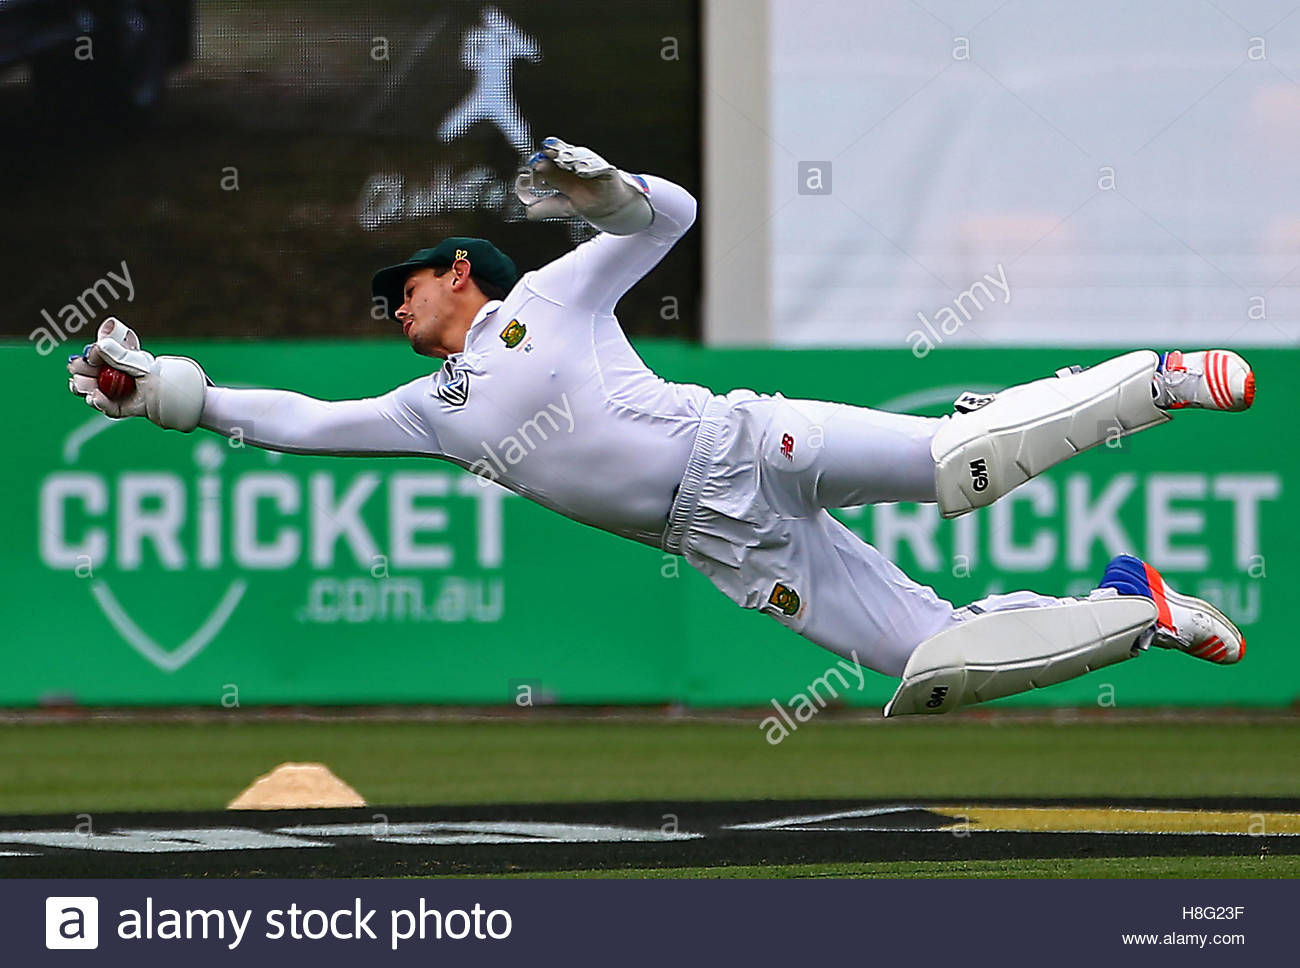 Cricket - Australia v South Africa - Second Test cricket match - Bellerive Oval, Hobart, Australia - 12/11/16 South Stock Foto